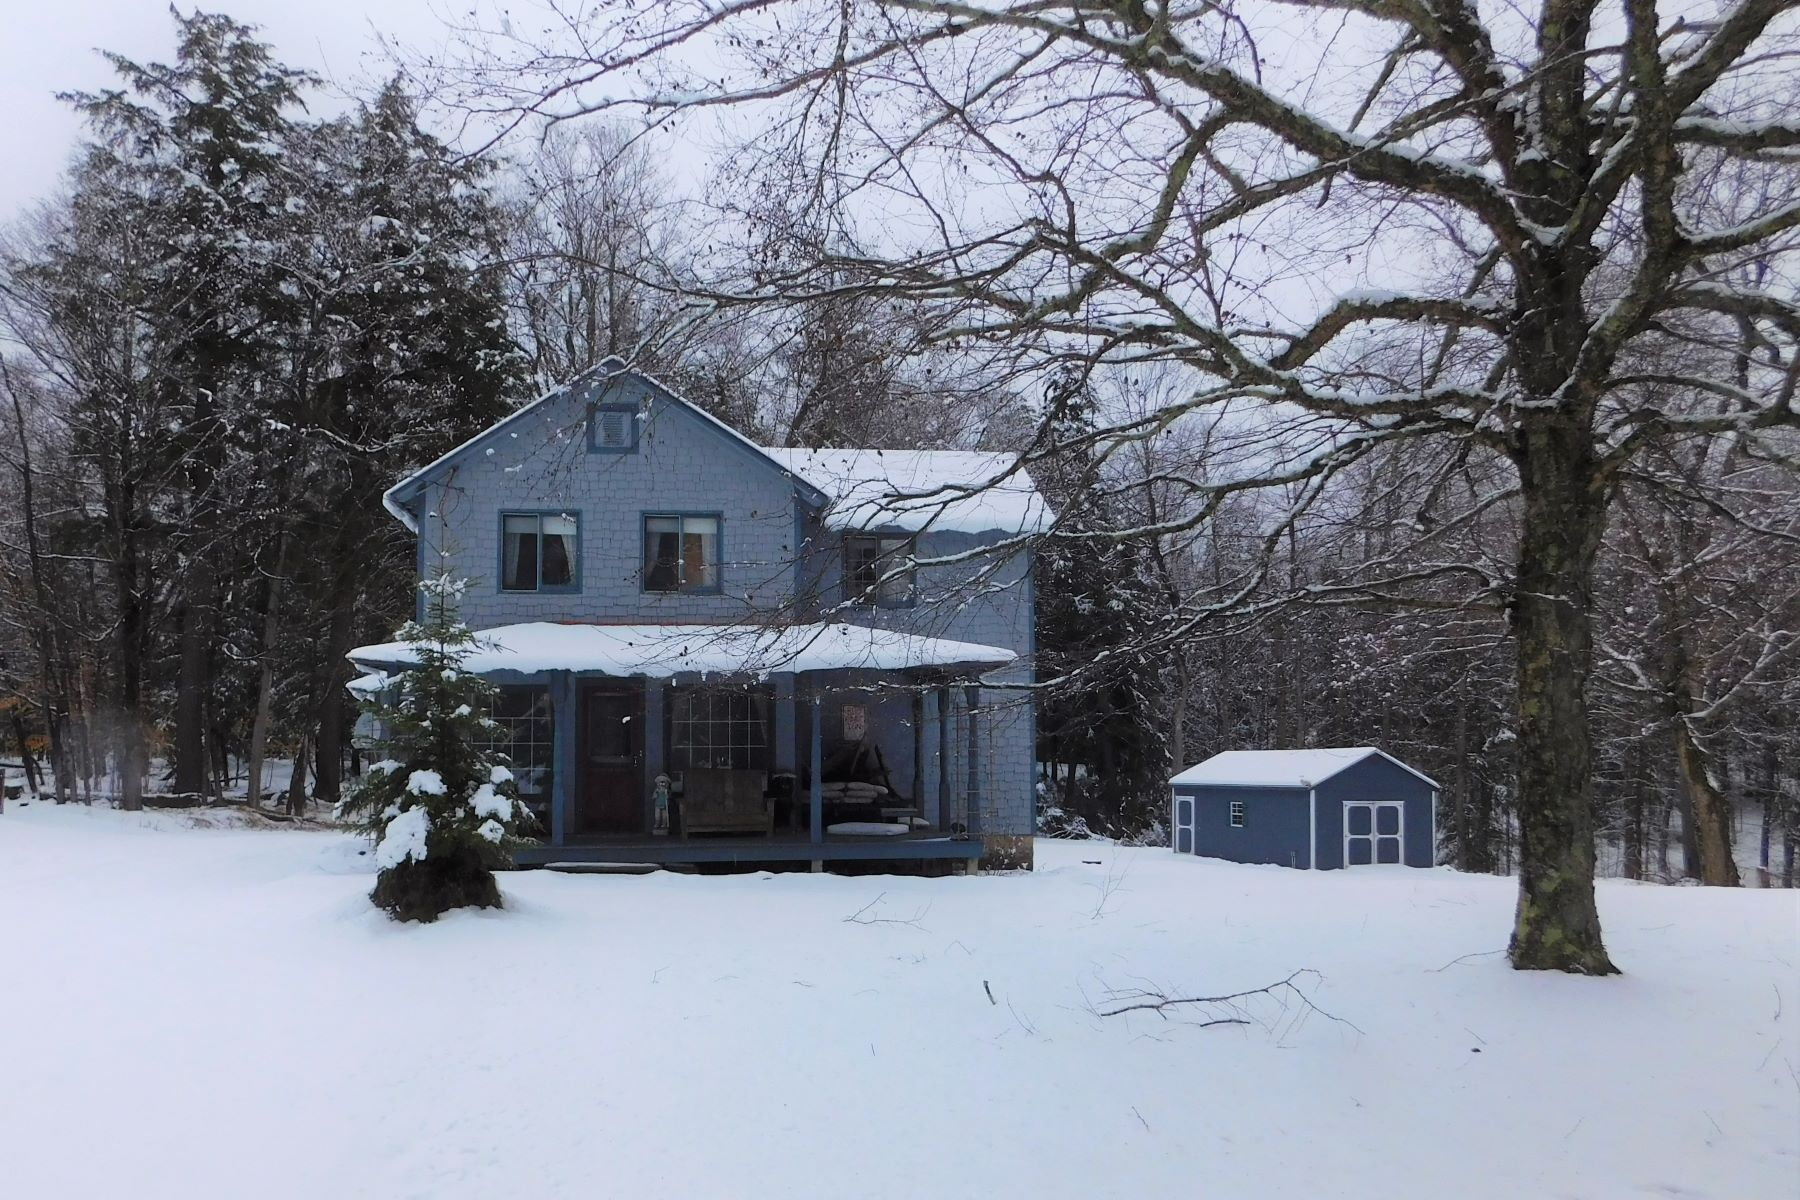 Single Family Homes for Sale at 20 South Shore Rd, Inlet, NY 13360 20 South Shore Rd Inlet, New York 13360 United States